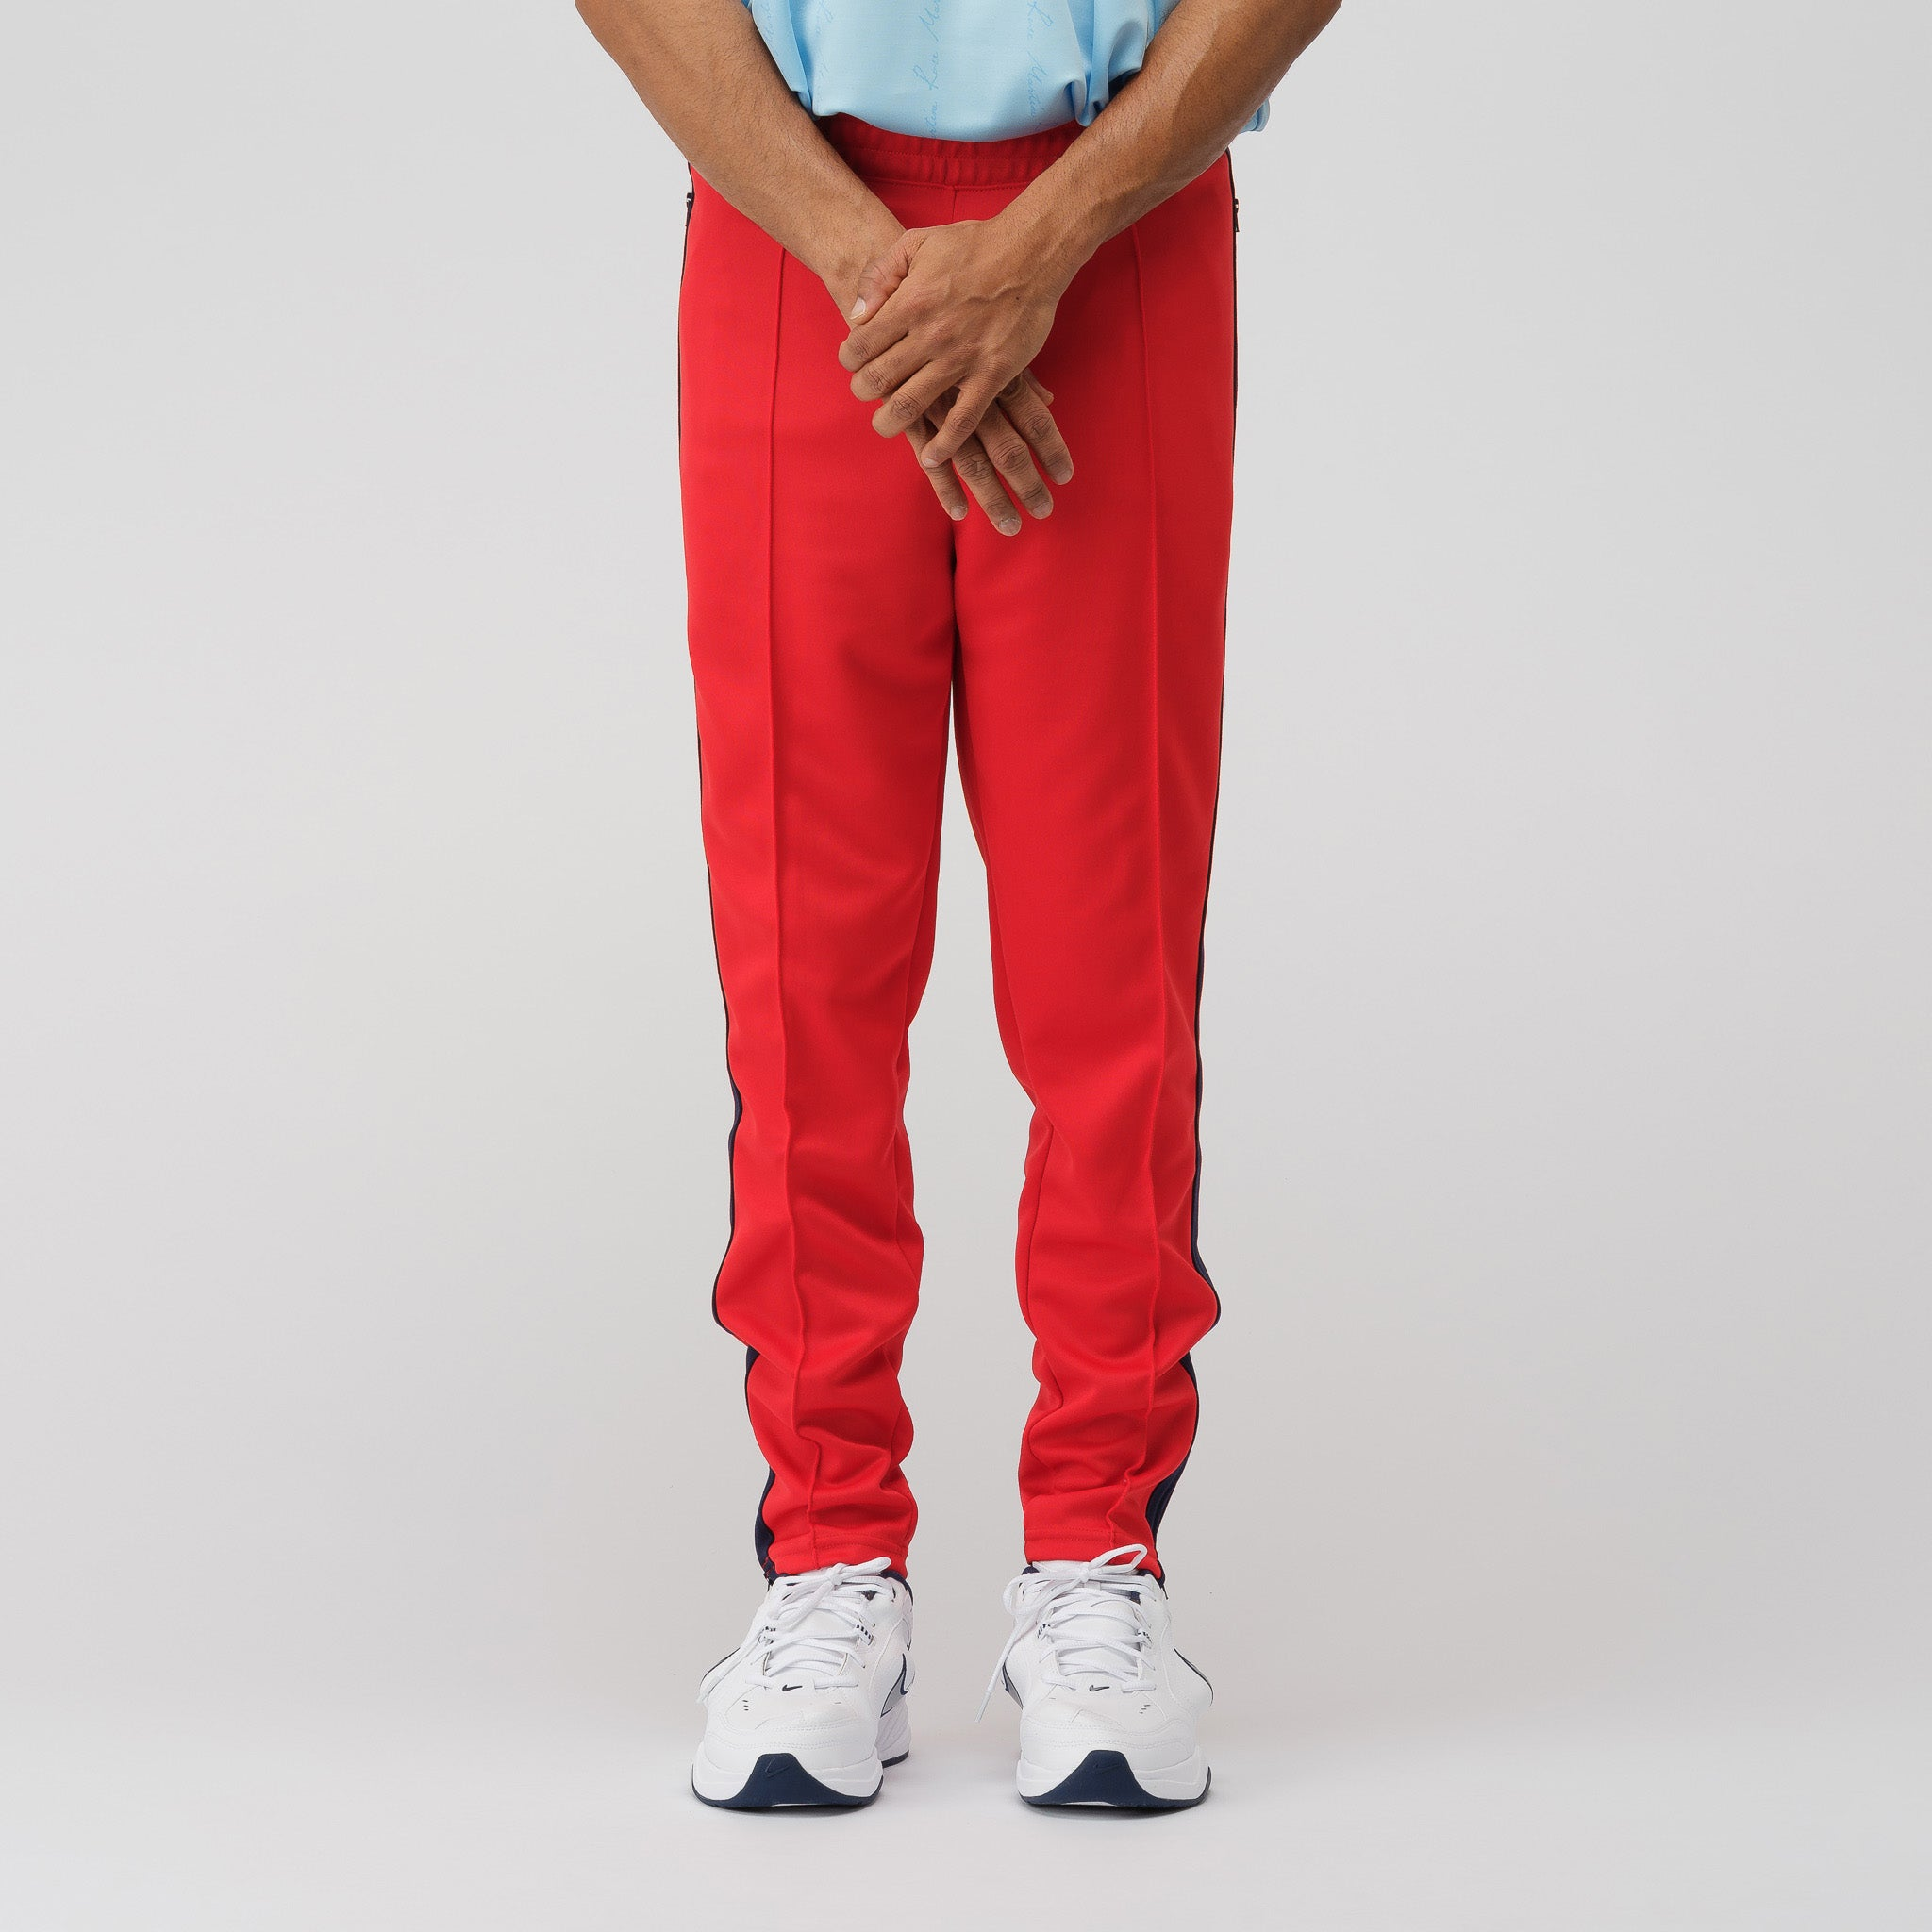 x Martine Rose Track Pant in Red/Blue